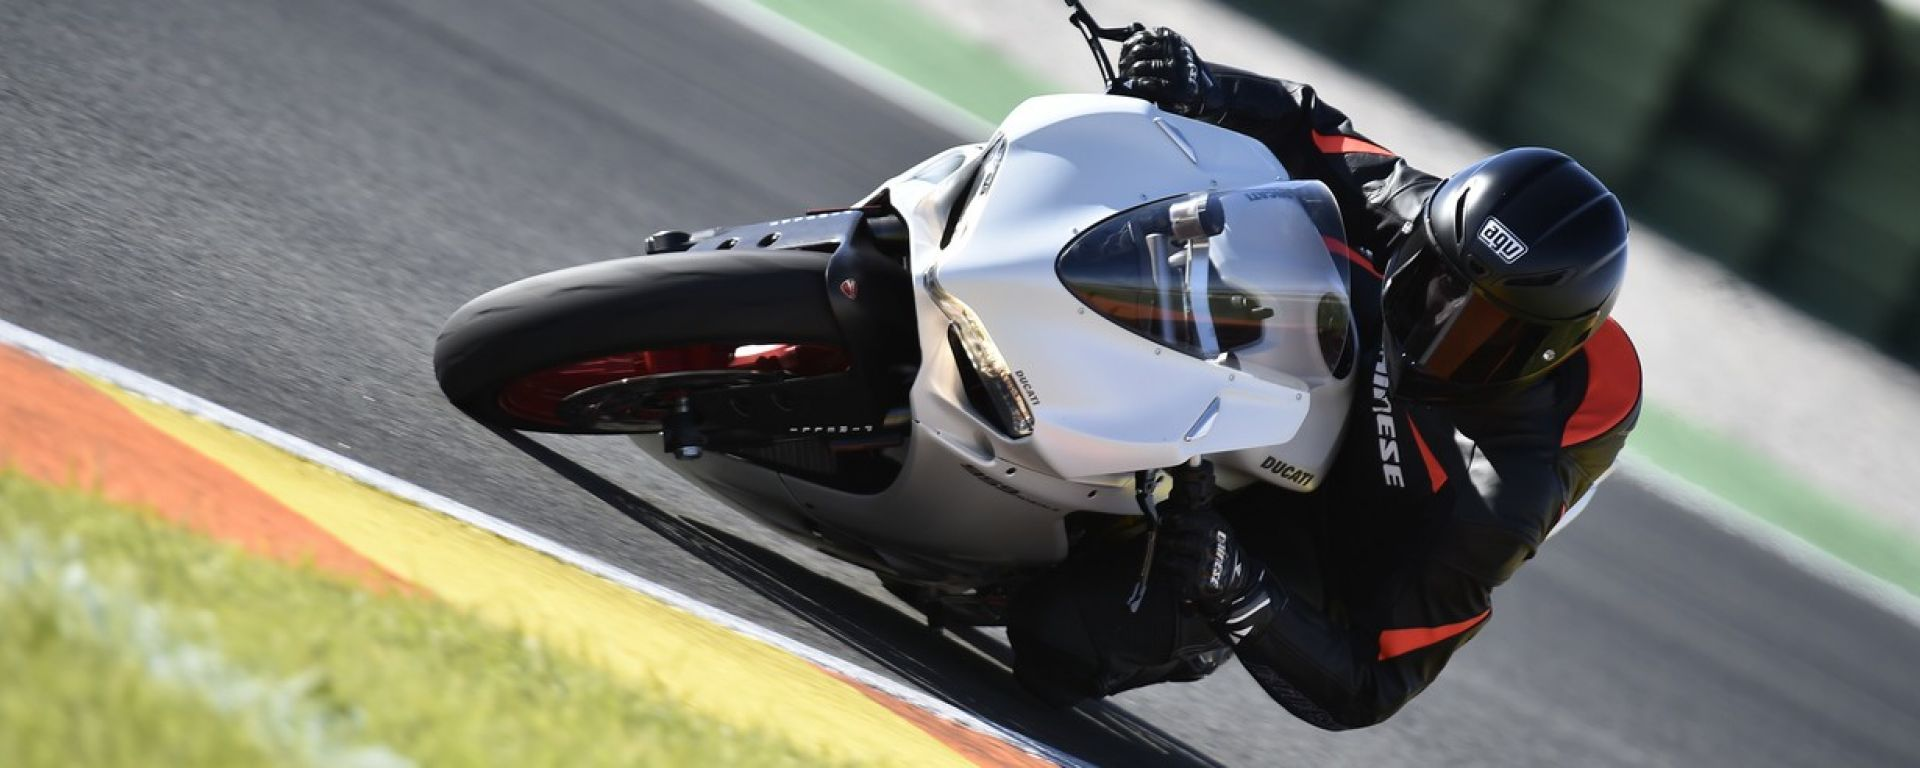 Ducati 959 Panigale: il video